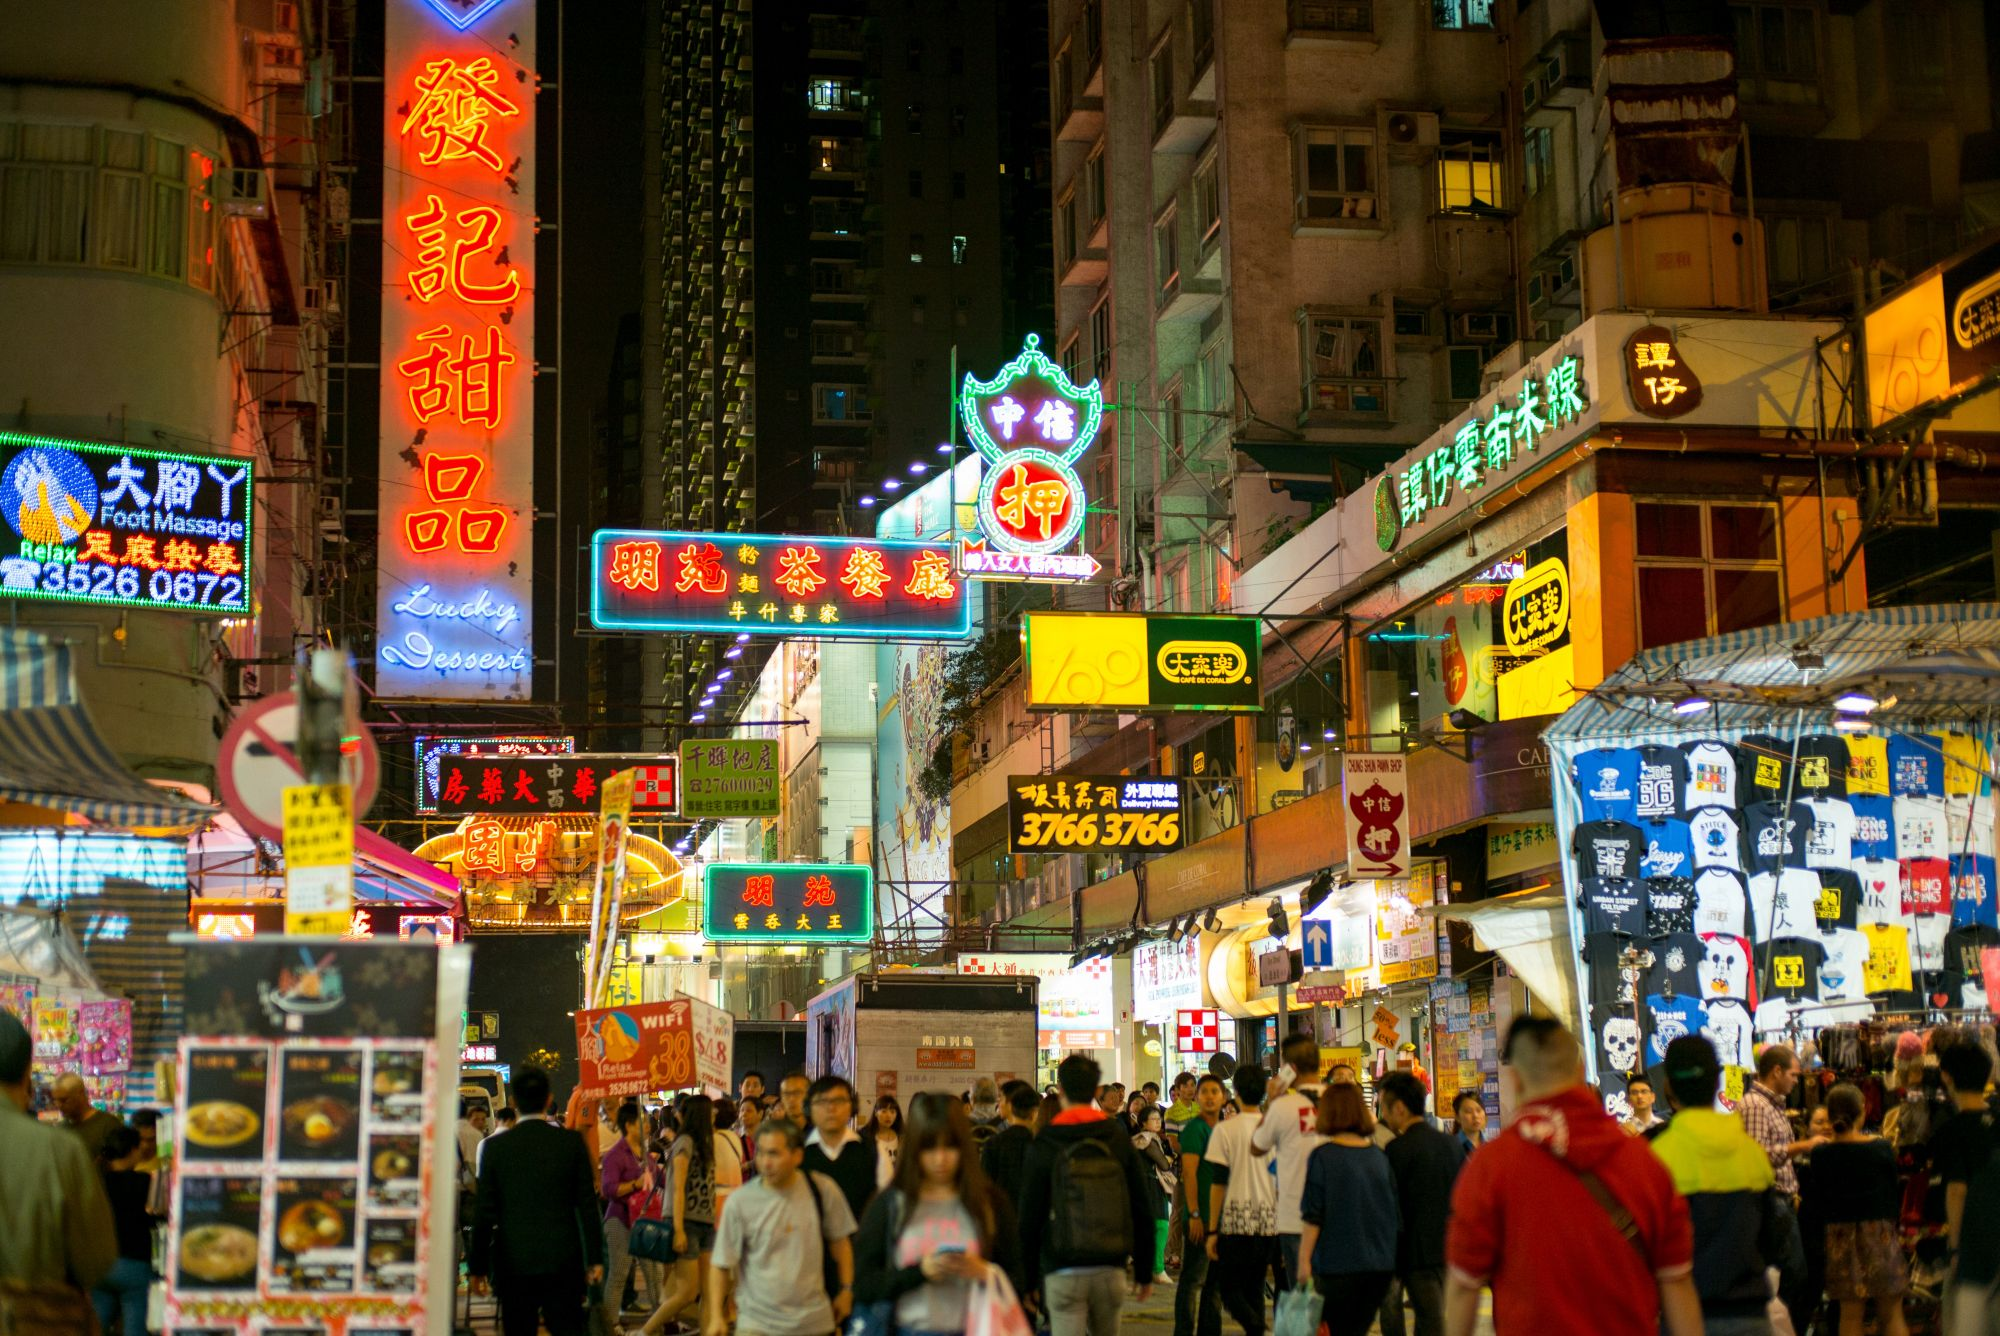 Neighbourhood Guide: What To Eat, Drink And Do In Mong Kok